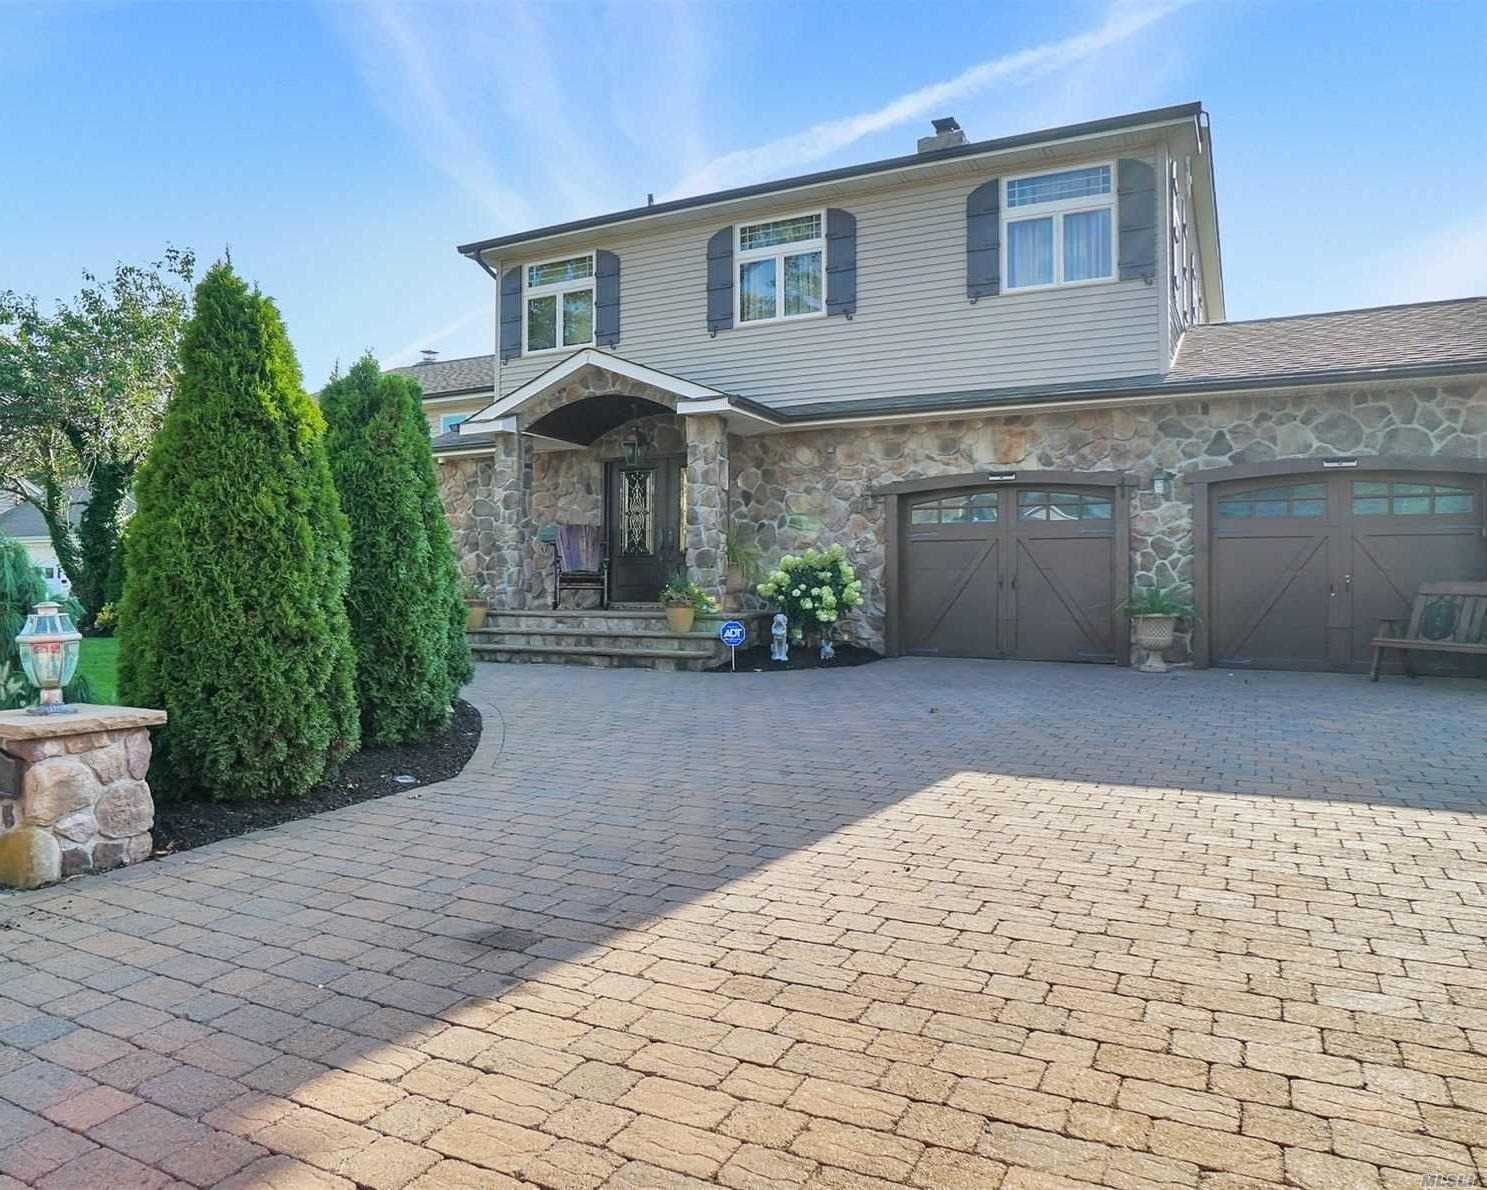 7 Waterview Ave - Massapequa, New York